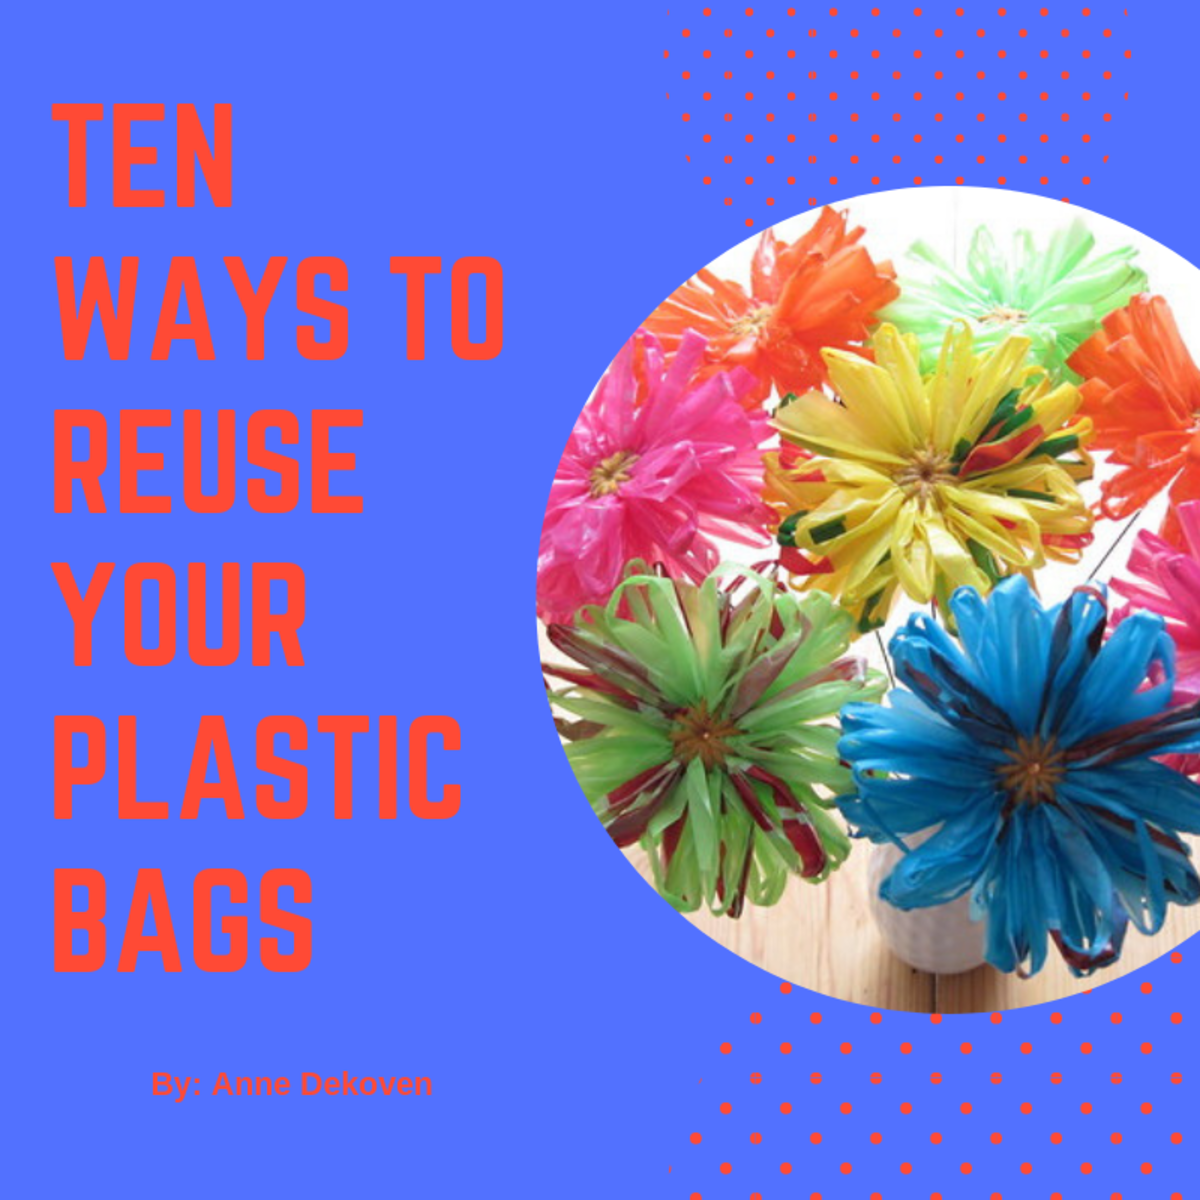 10 Ways to Reuse Your Plastic Bags